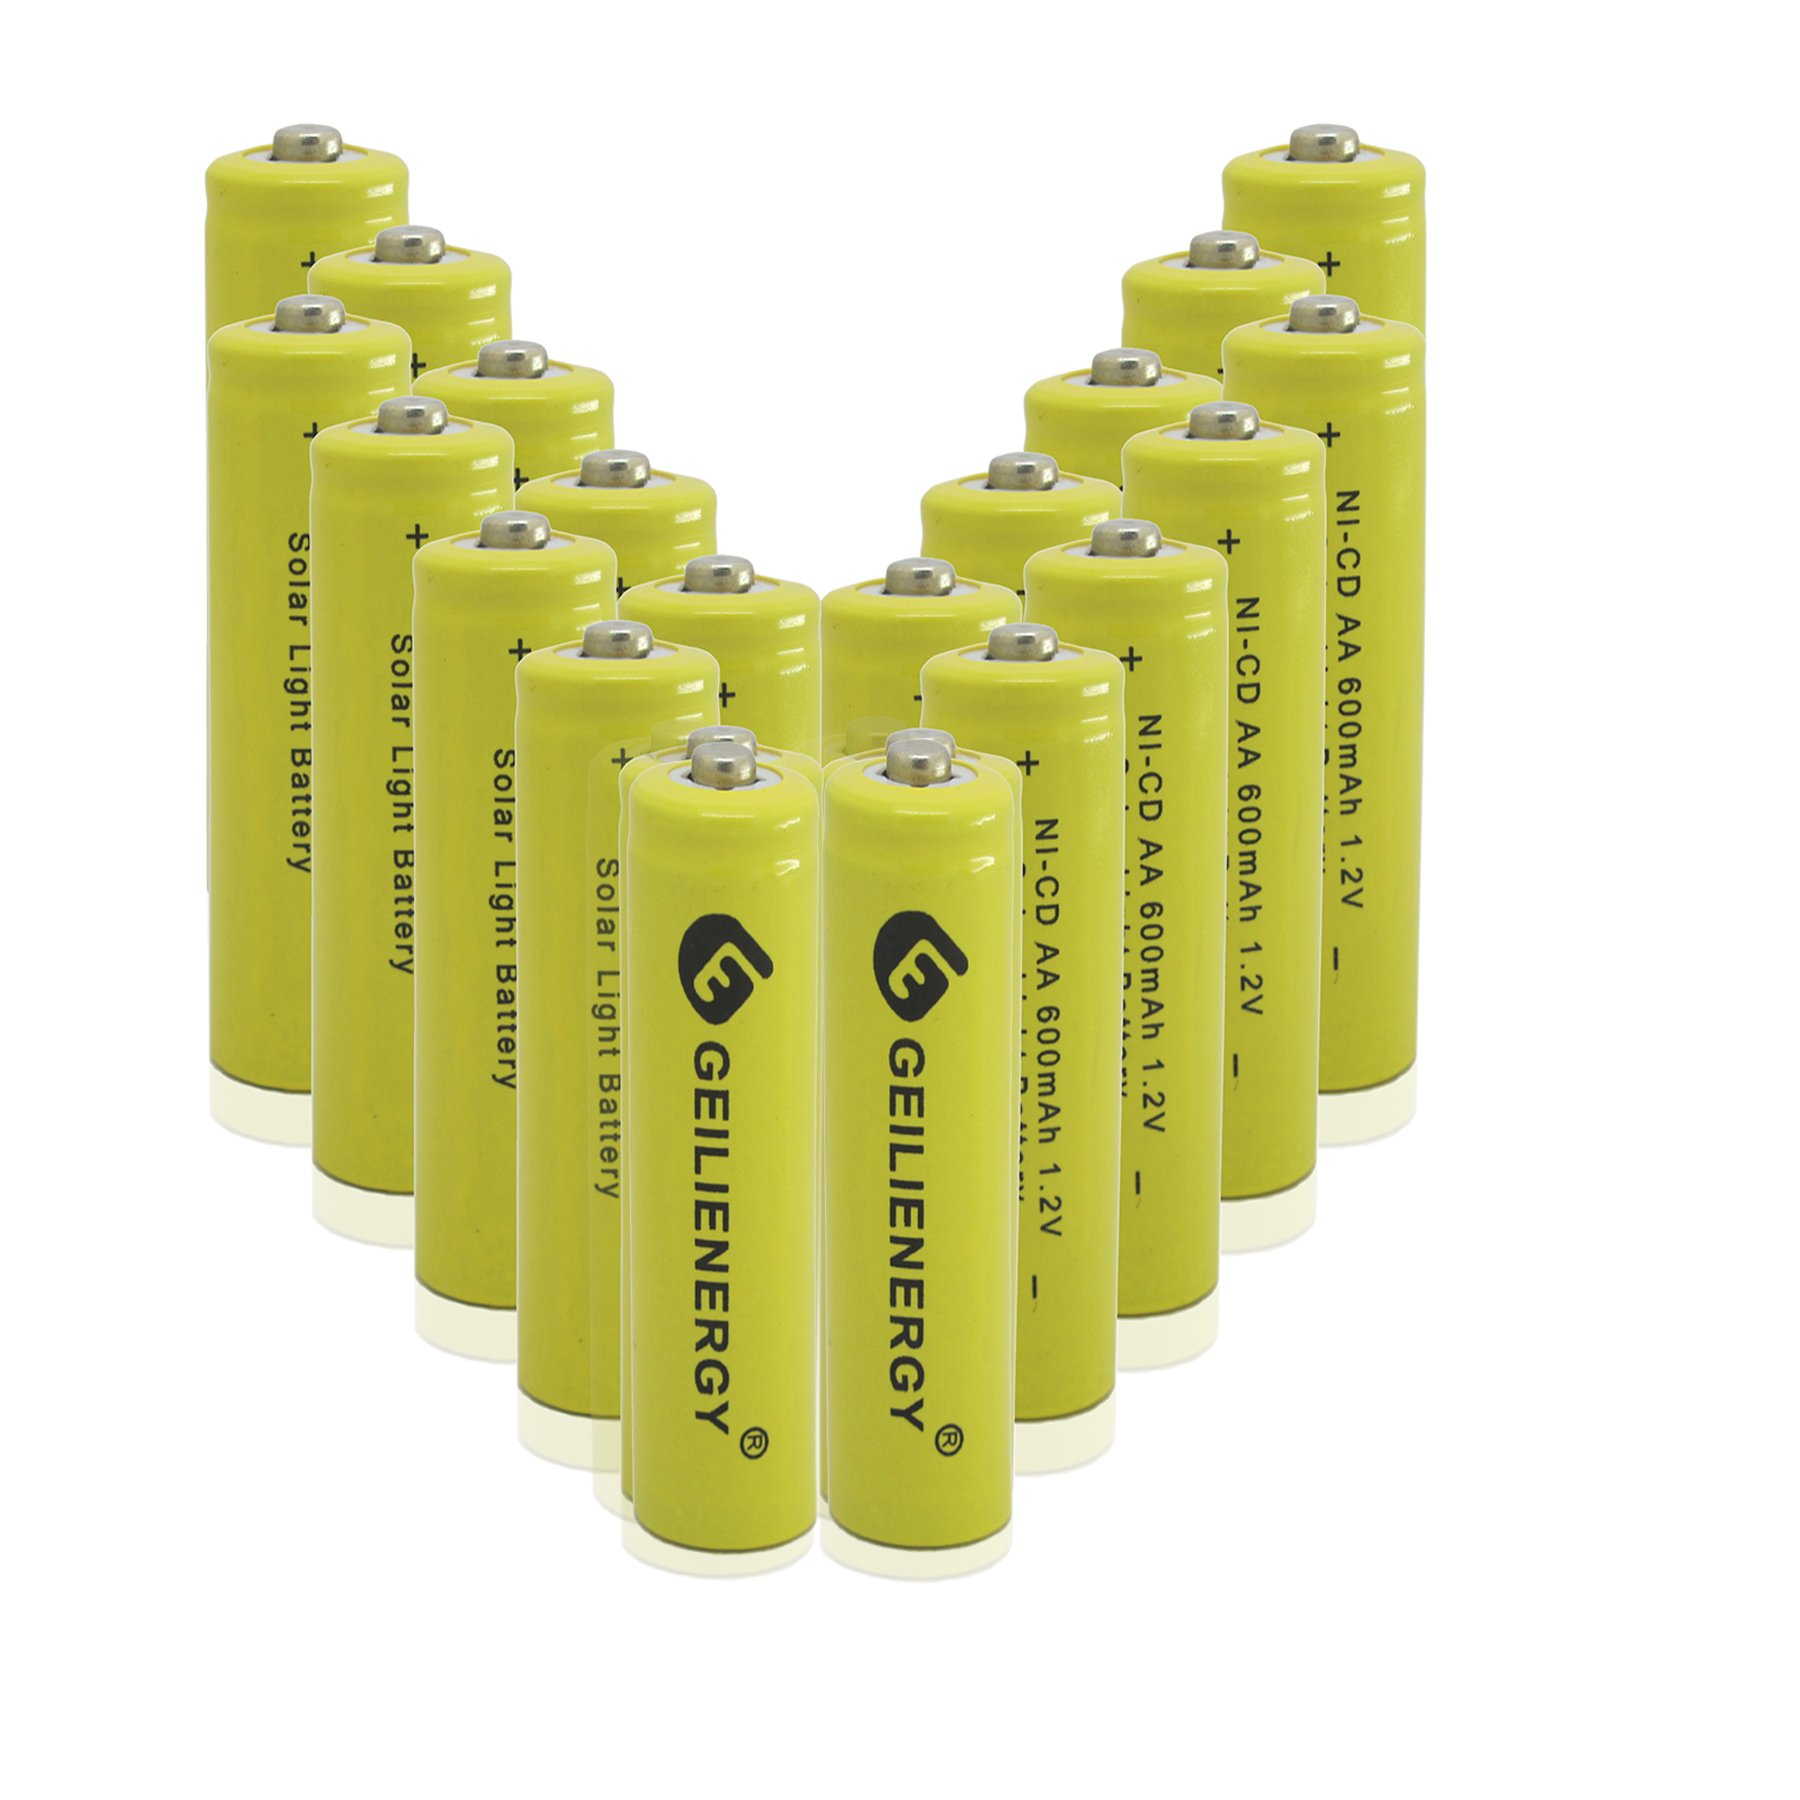 GEILIENERGY AA Size NICD AA 600mAh 1.2V Rechargeable Batteries for Solar Light,Solar Lamp,Garden Lights(Pack of 20)